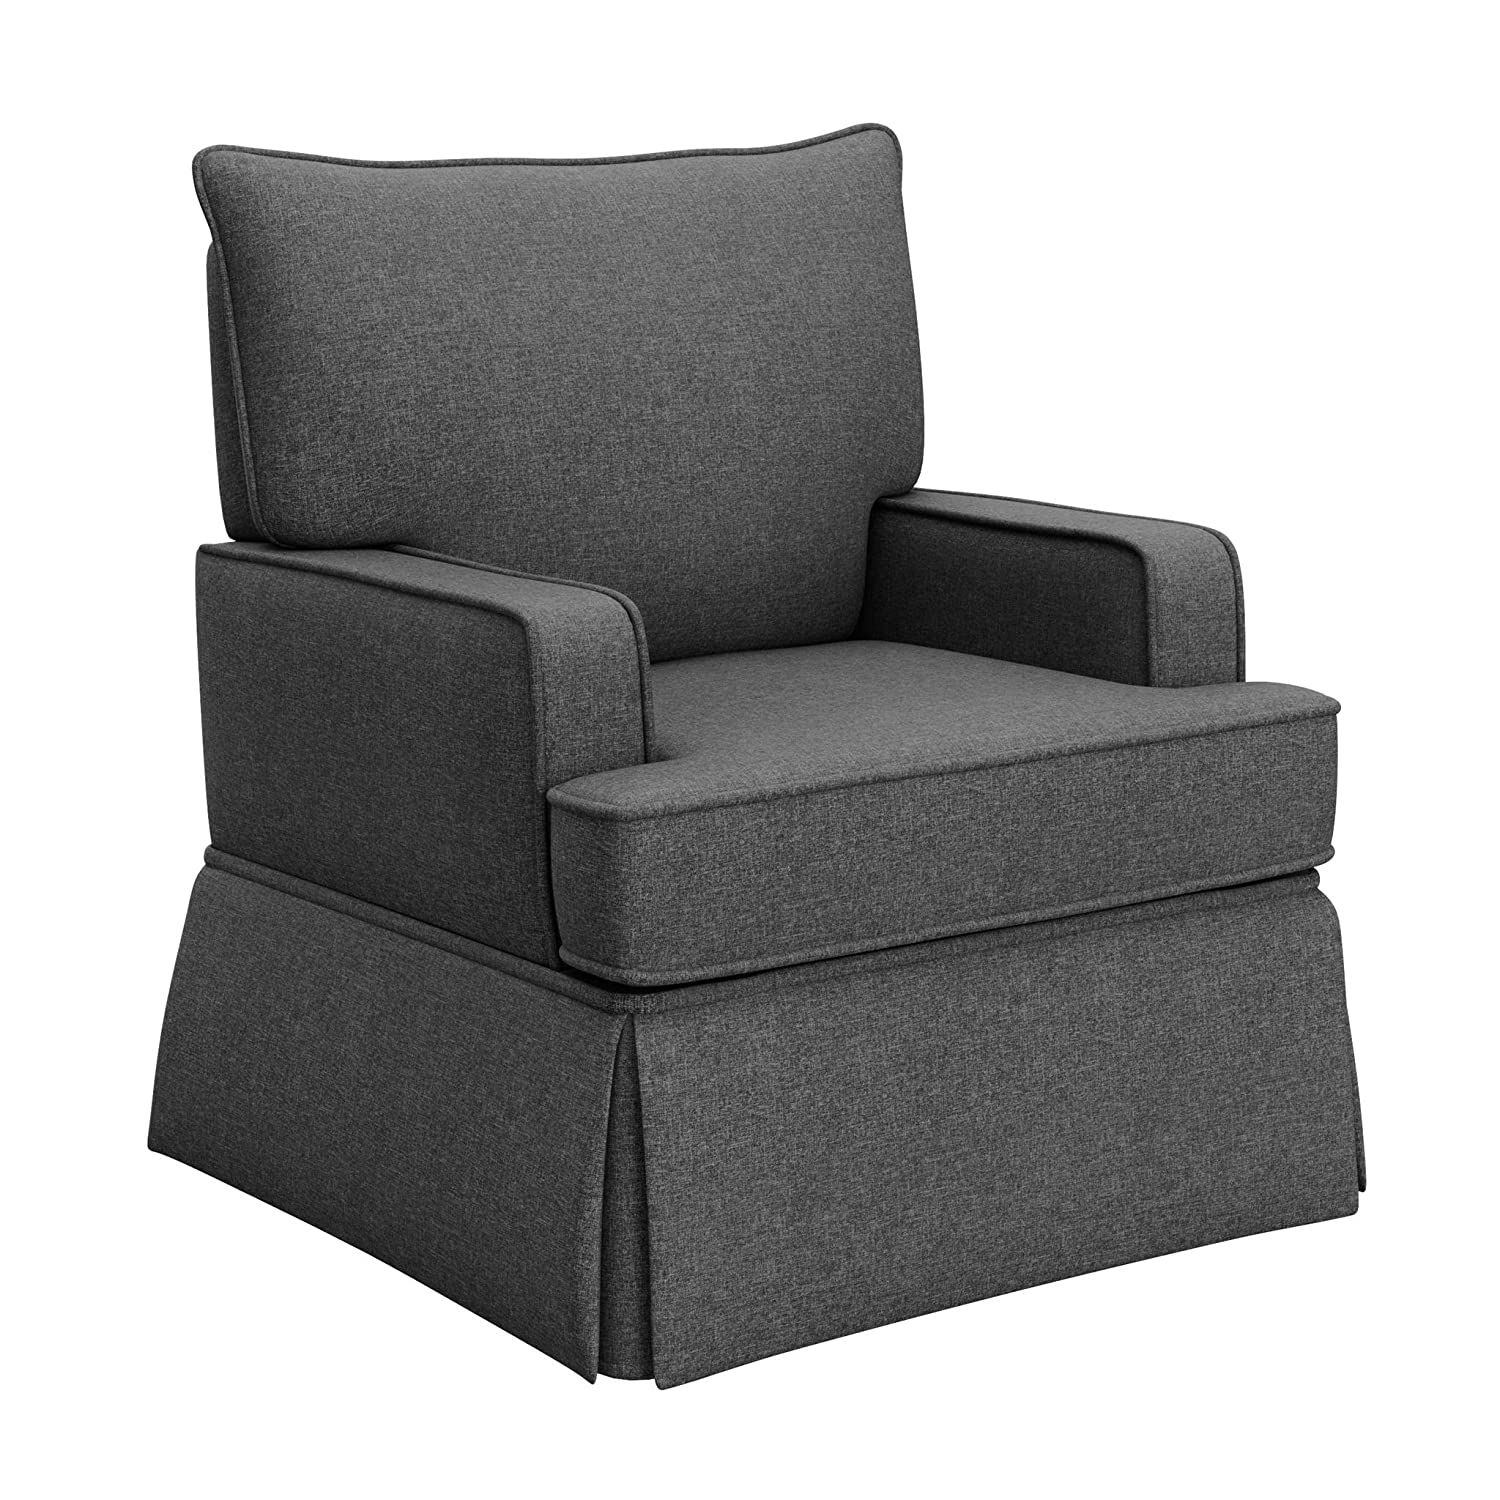 Storkcraft Davenport Upholstered Swivel Glider Shadow Cleanable Upholstered Comfort Rocking Nursery Swivel Chair